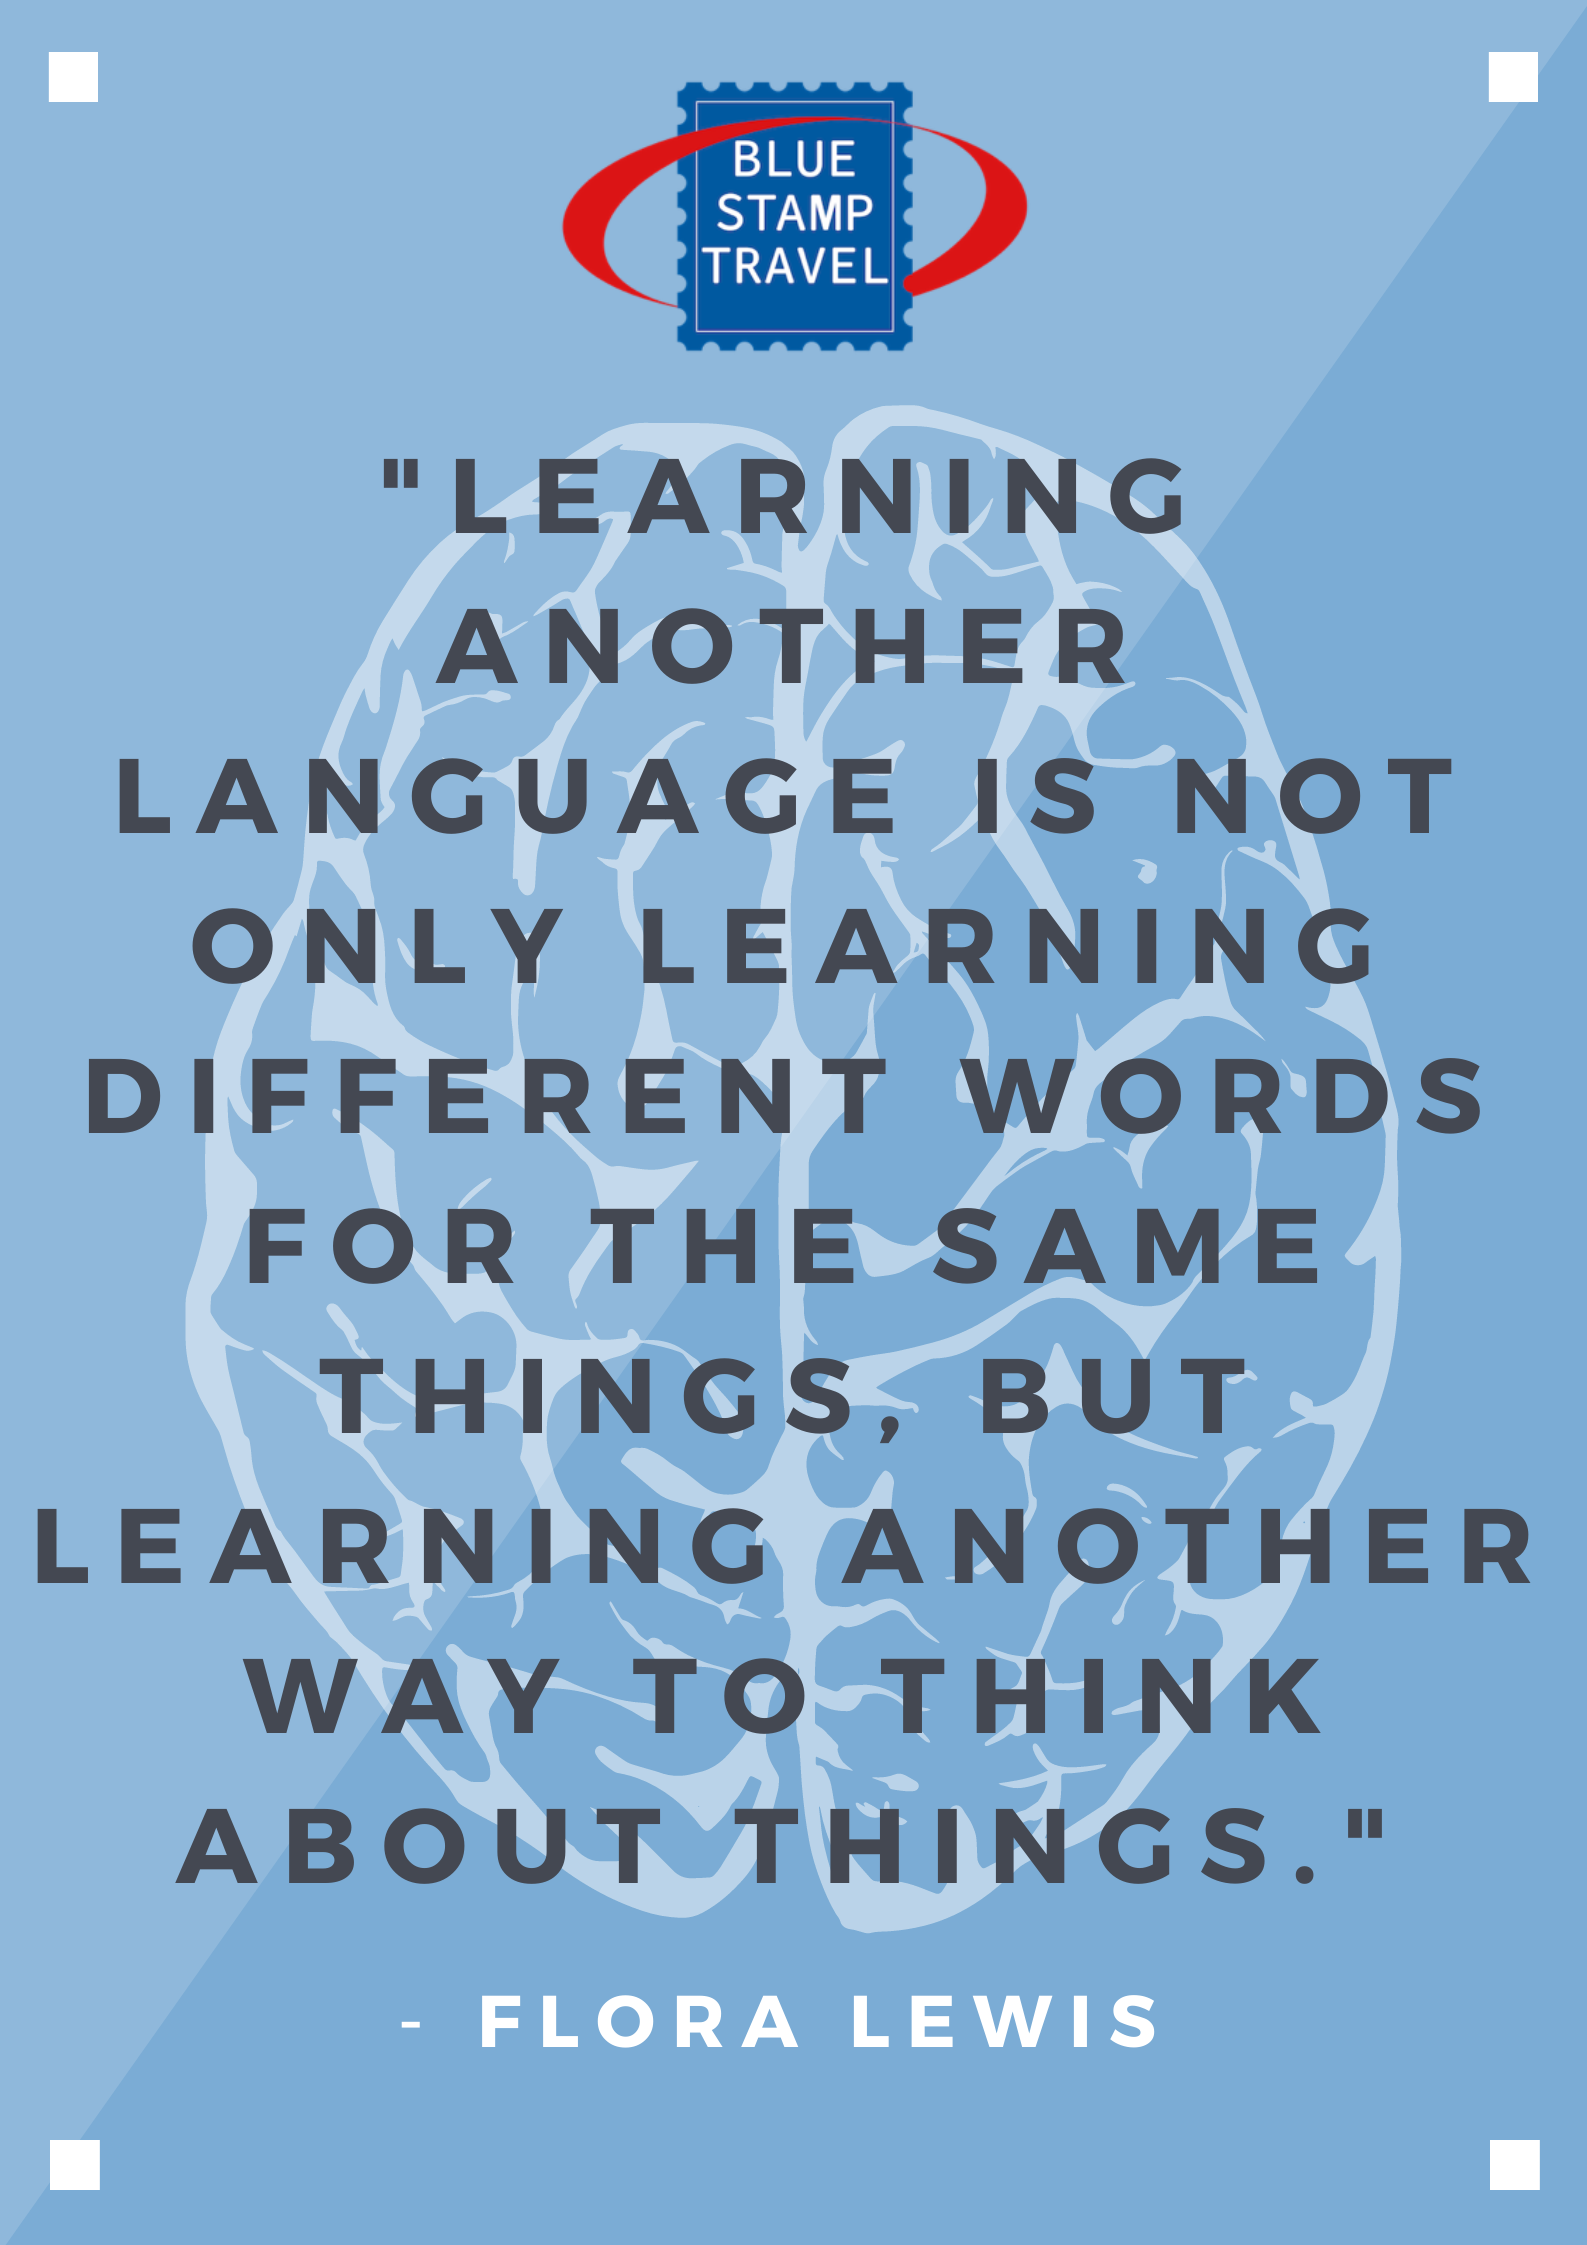 Languages Quotes Poster